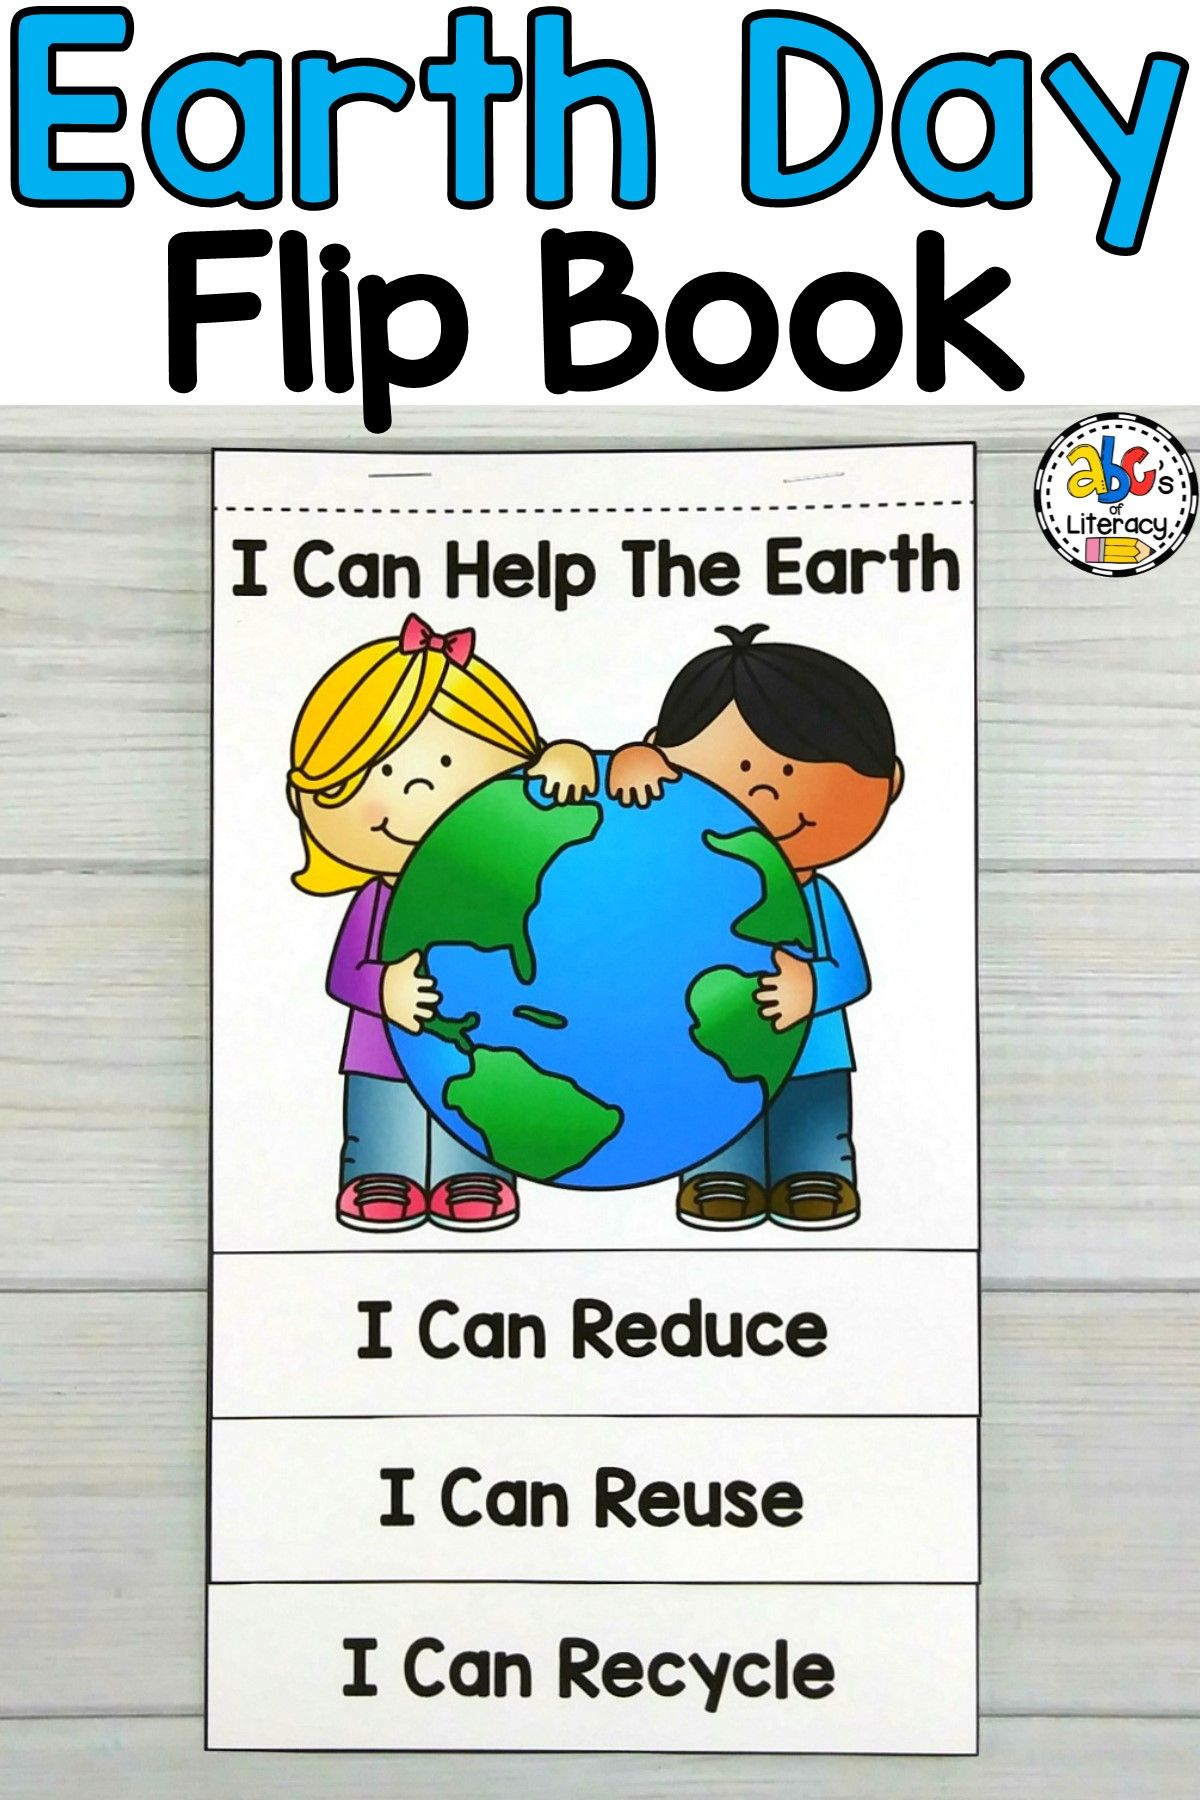 Earth Day Flip Book With Images